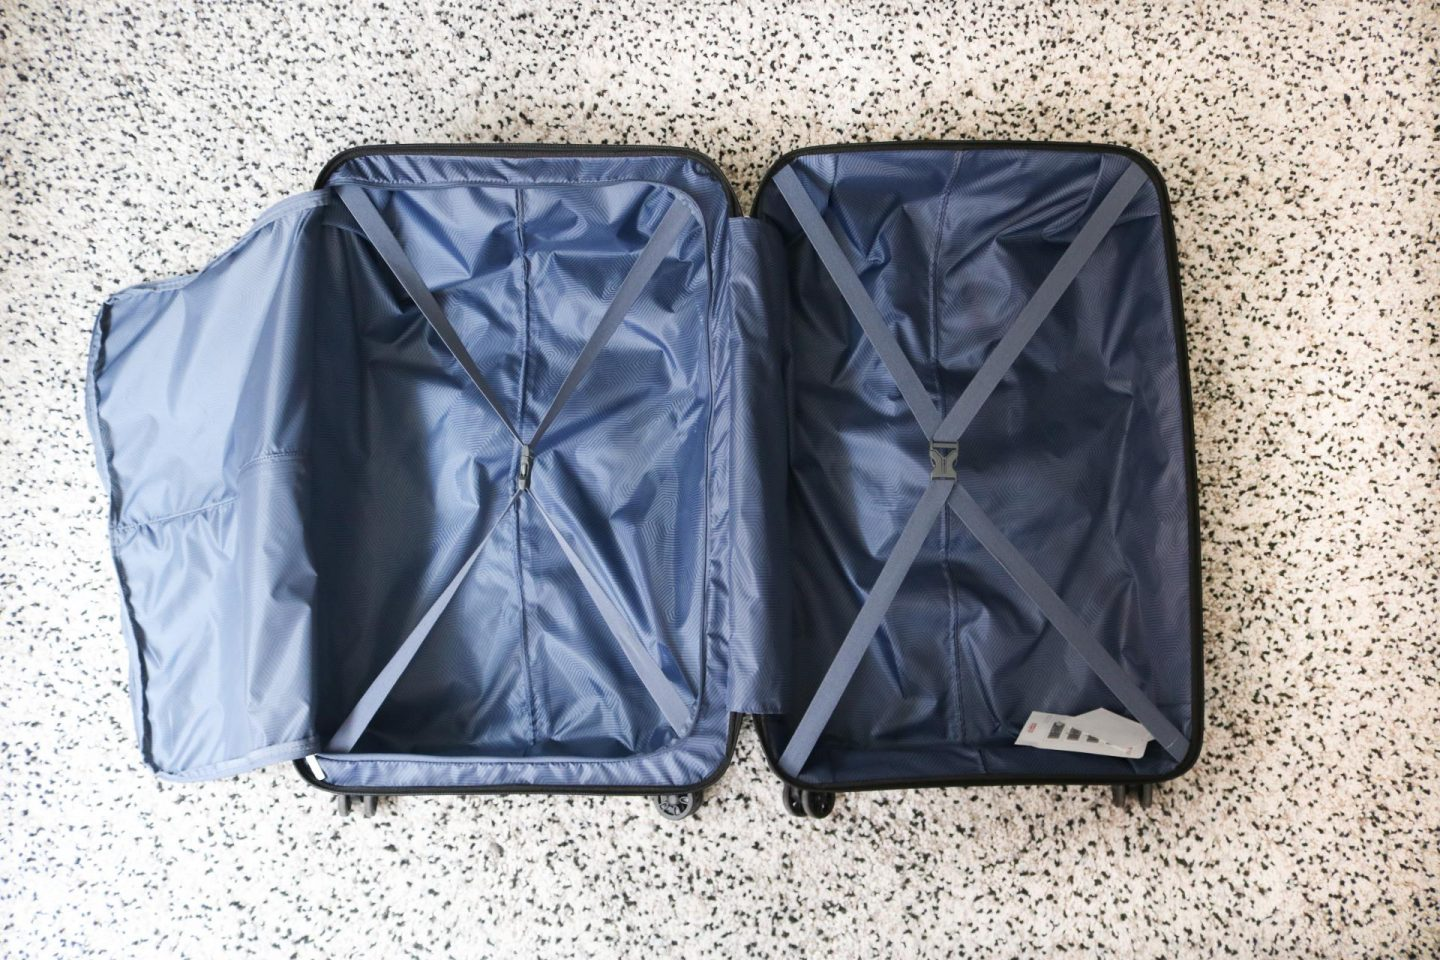 American Tourister suitcase Airconic in Black Onyx 77cm